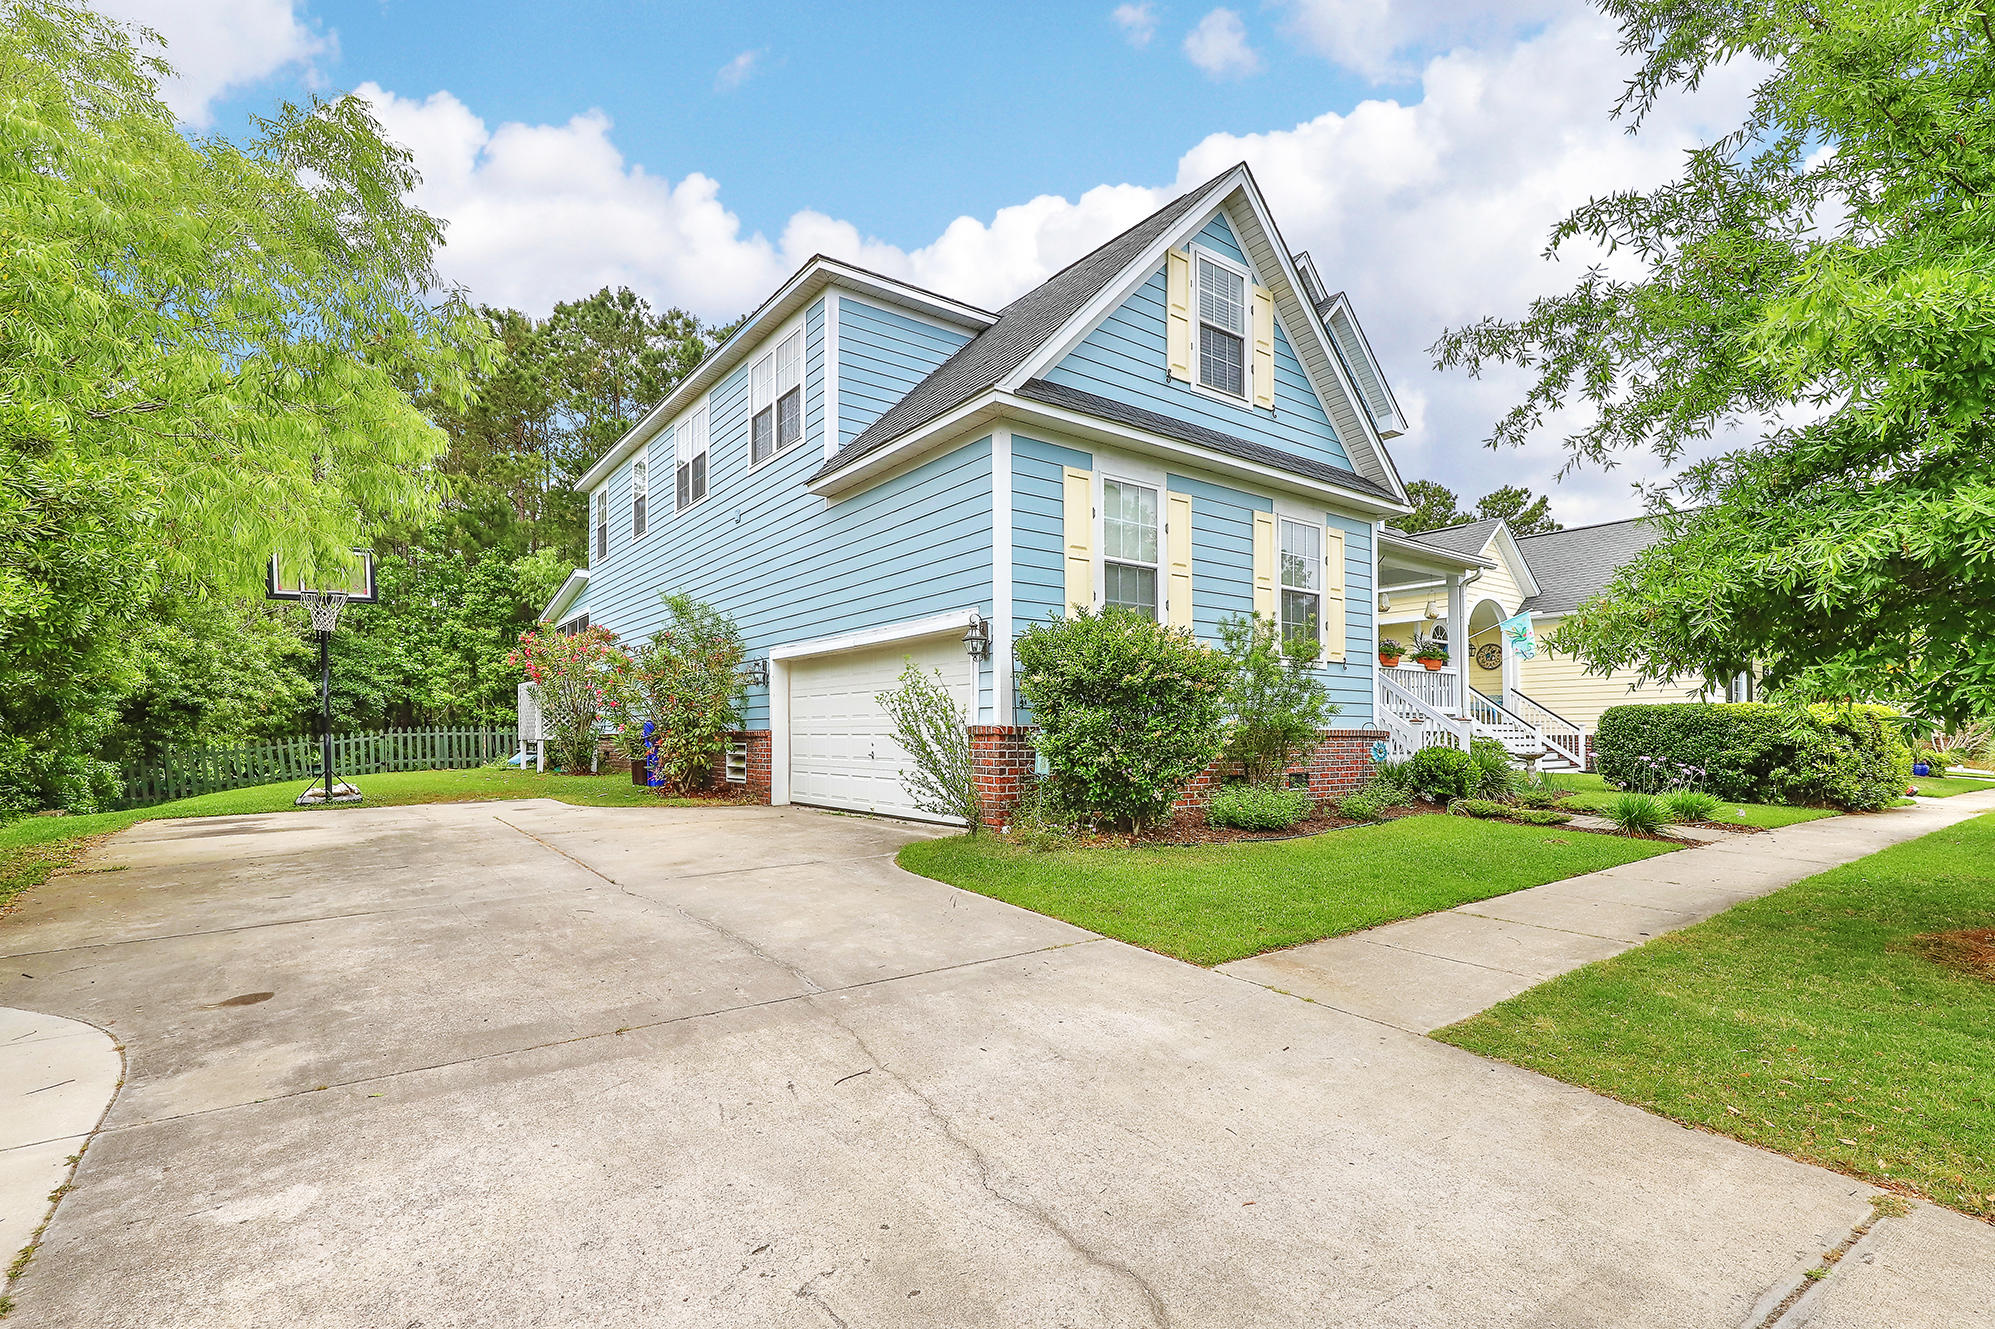 Rivertowne On The Wando Homes For Sale - 2182 Sandy Point Lane, Mount Pleasant, SC - 33